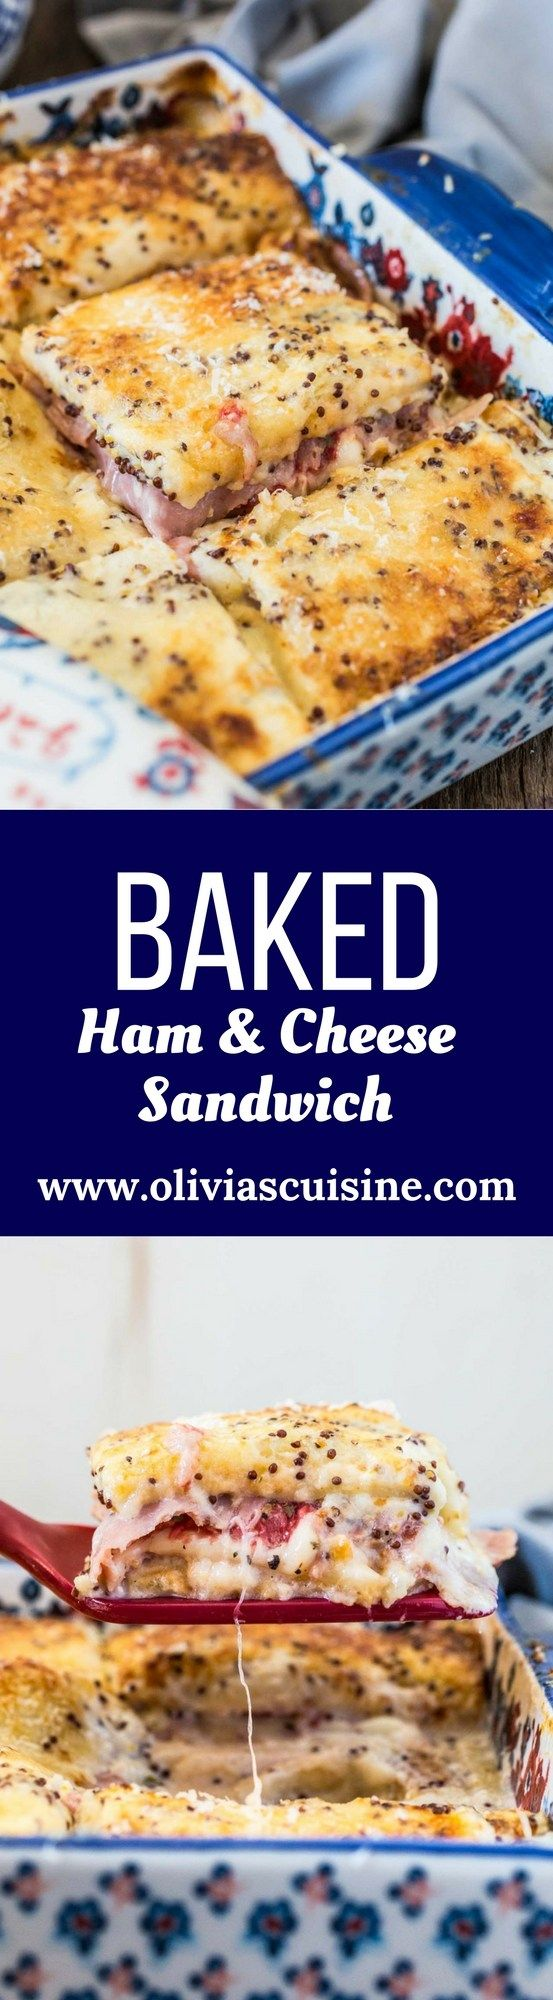 Brazilian Baked Ham and Cheese Sandwich | www.oliviascuisine.com | Who can resist a bubbly Baked Ham and Cheese Sandwich coming hot out of the oven? This Brazilian version takes it up a notch, because the sandwiches are covered with a delicious and creamy mustard-y white sauce. Simply to die for! @PepperidgeFarm #SandwichWithTheBest #ad